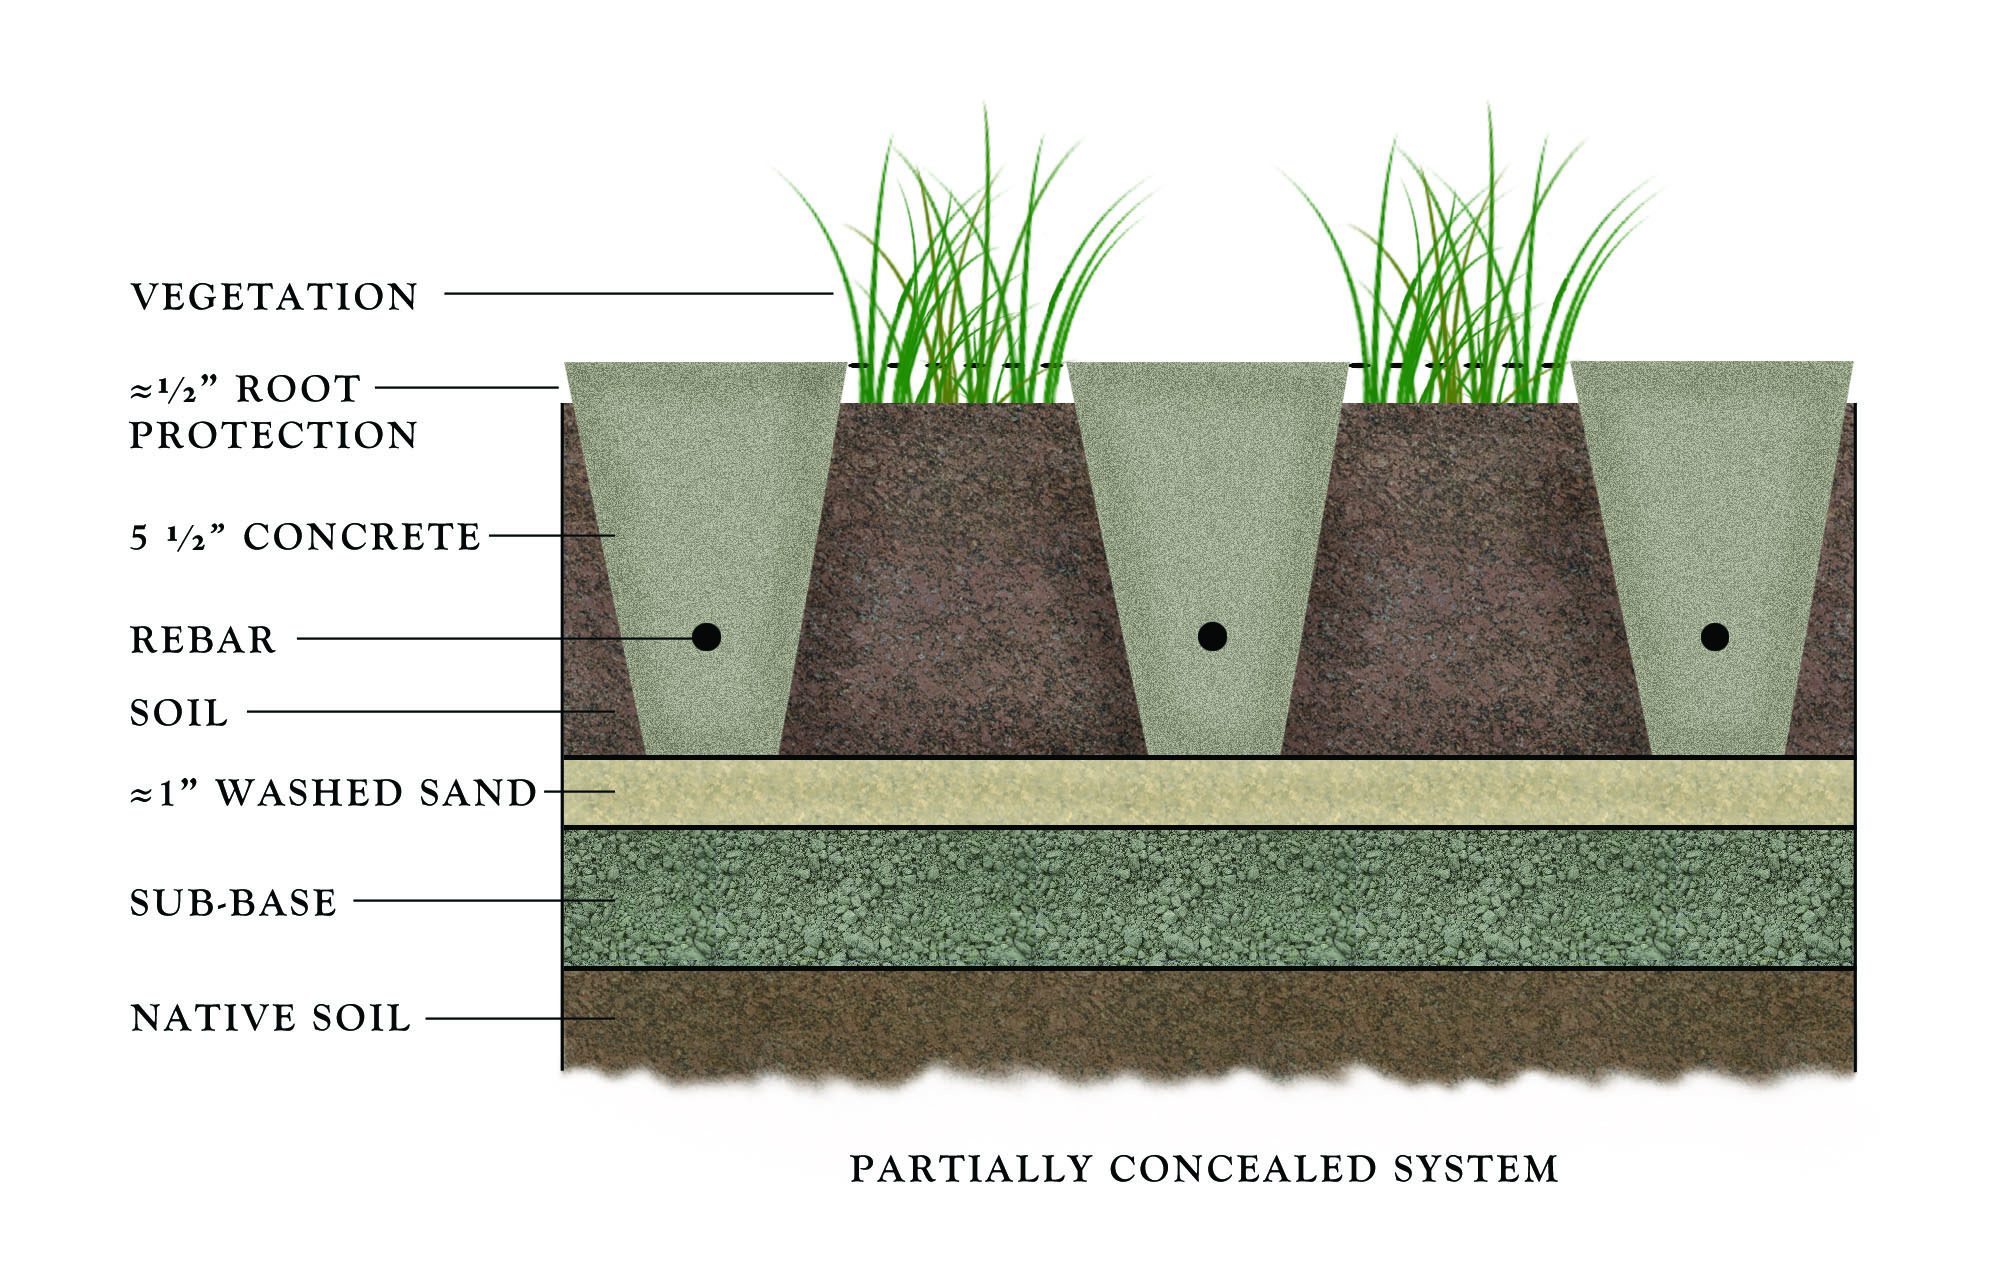 Partially Concealed | Sustainable Paving Systems ...